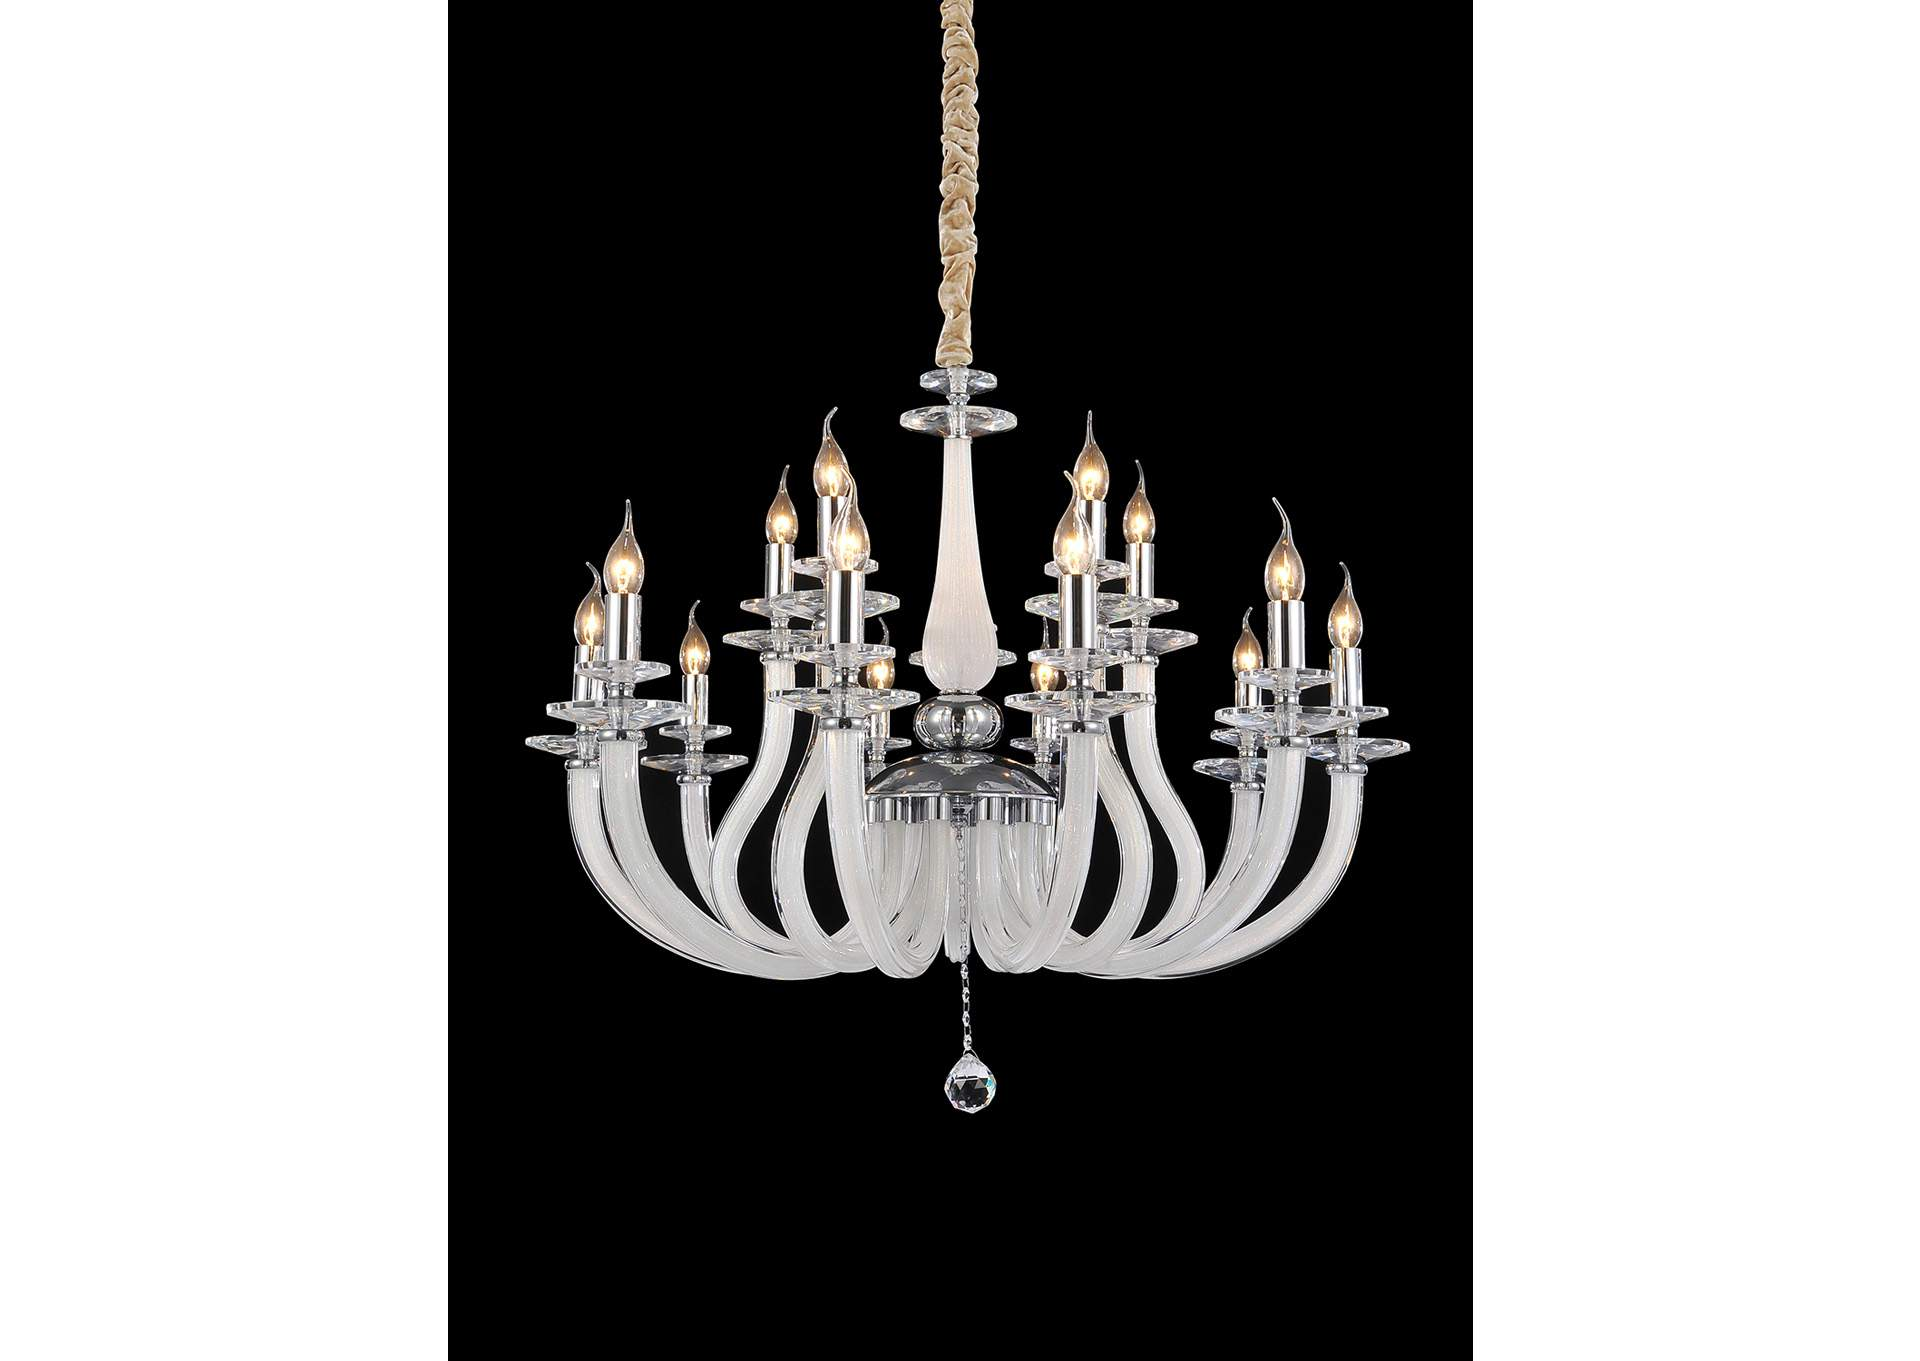 San Marco Glass & Chrome 15 Light Chandelier 220V,AICO